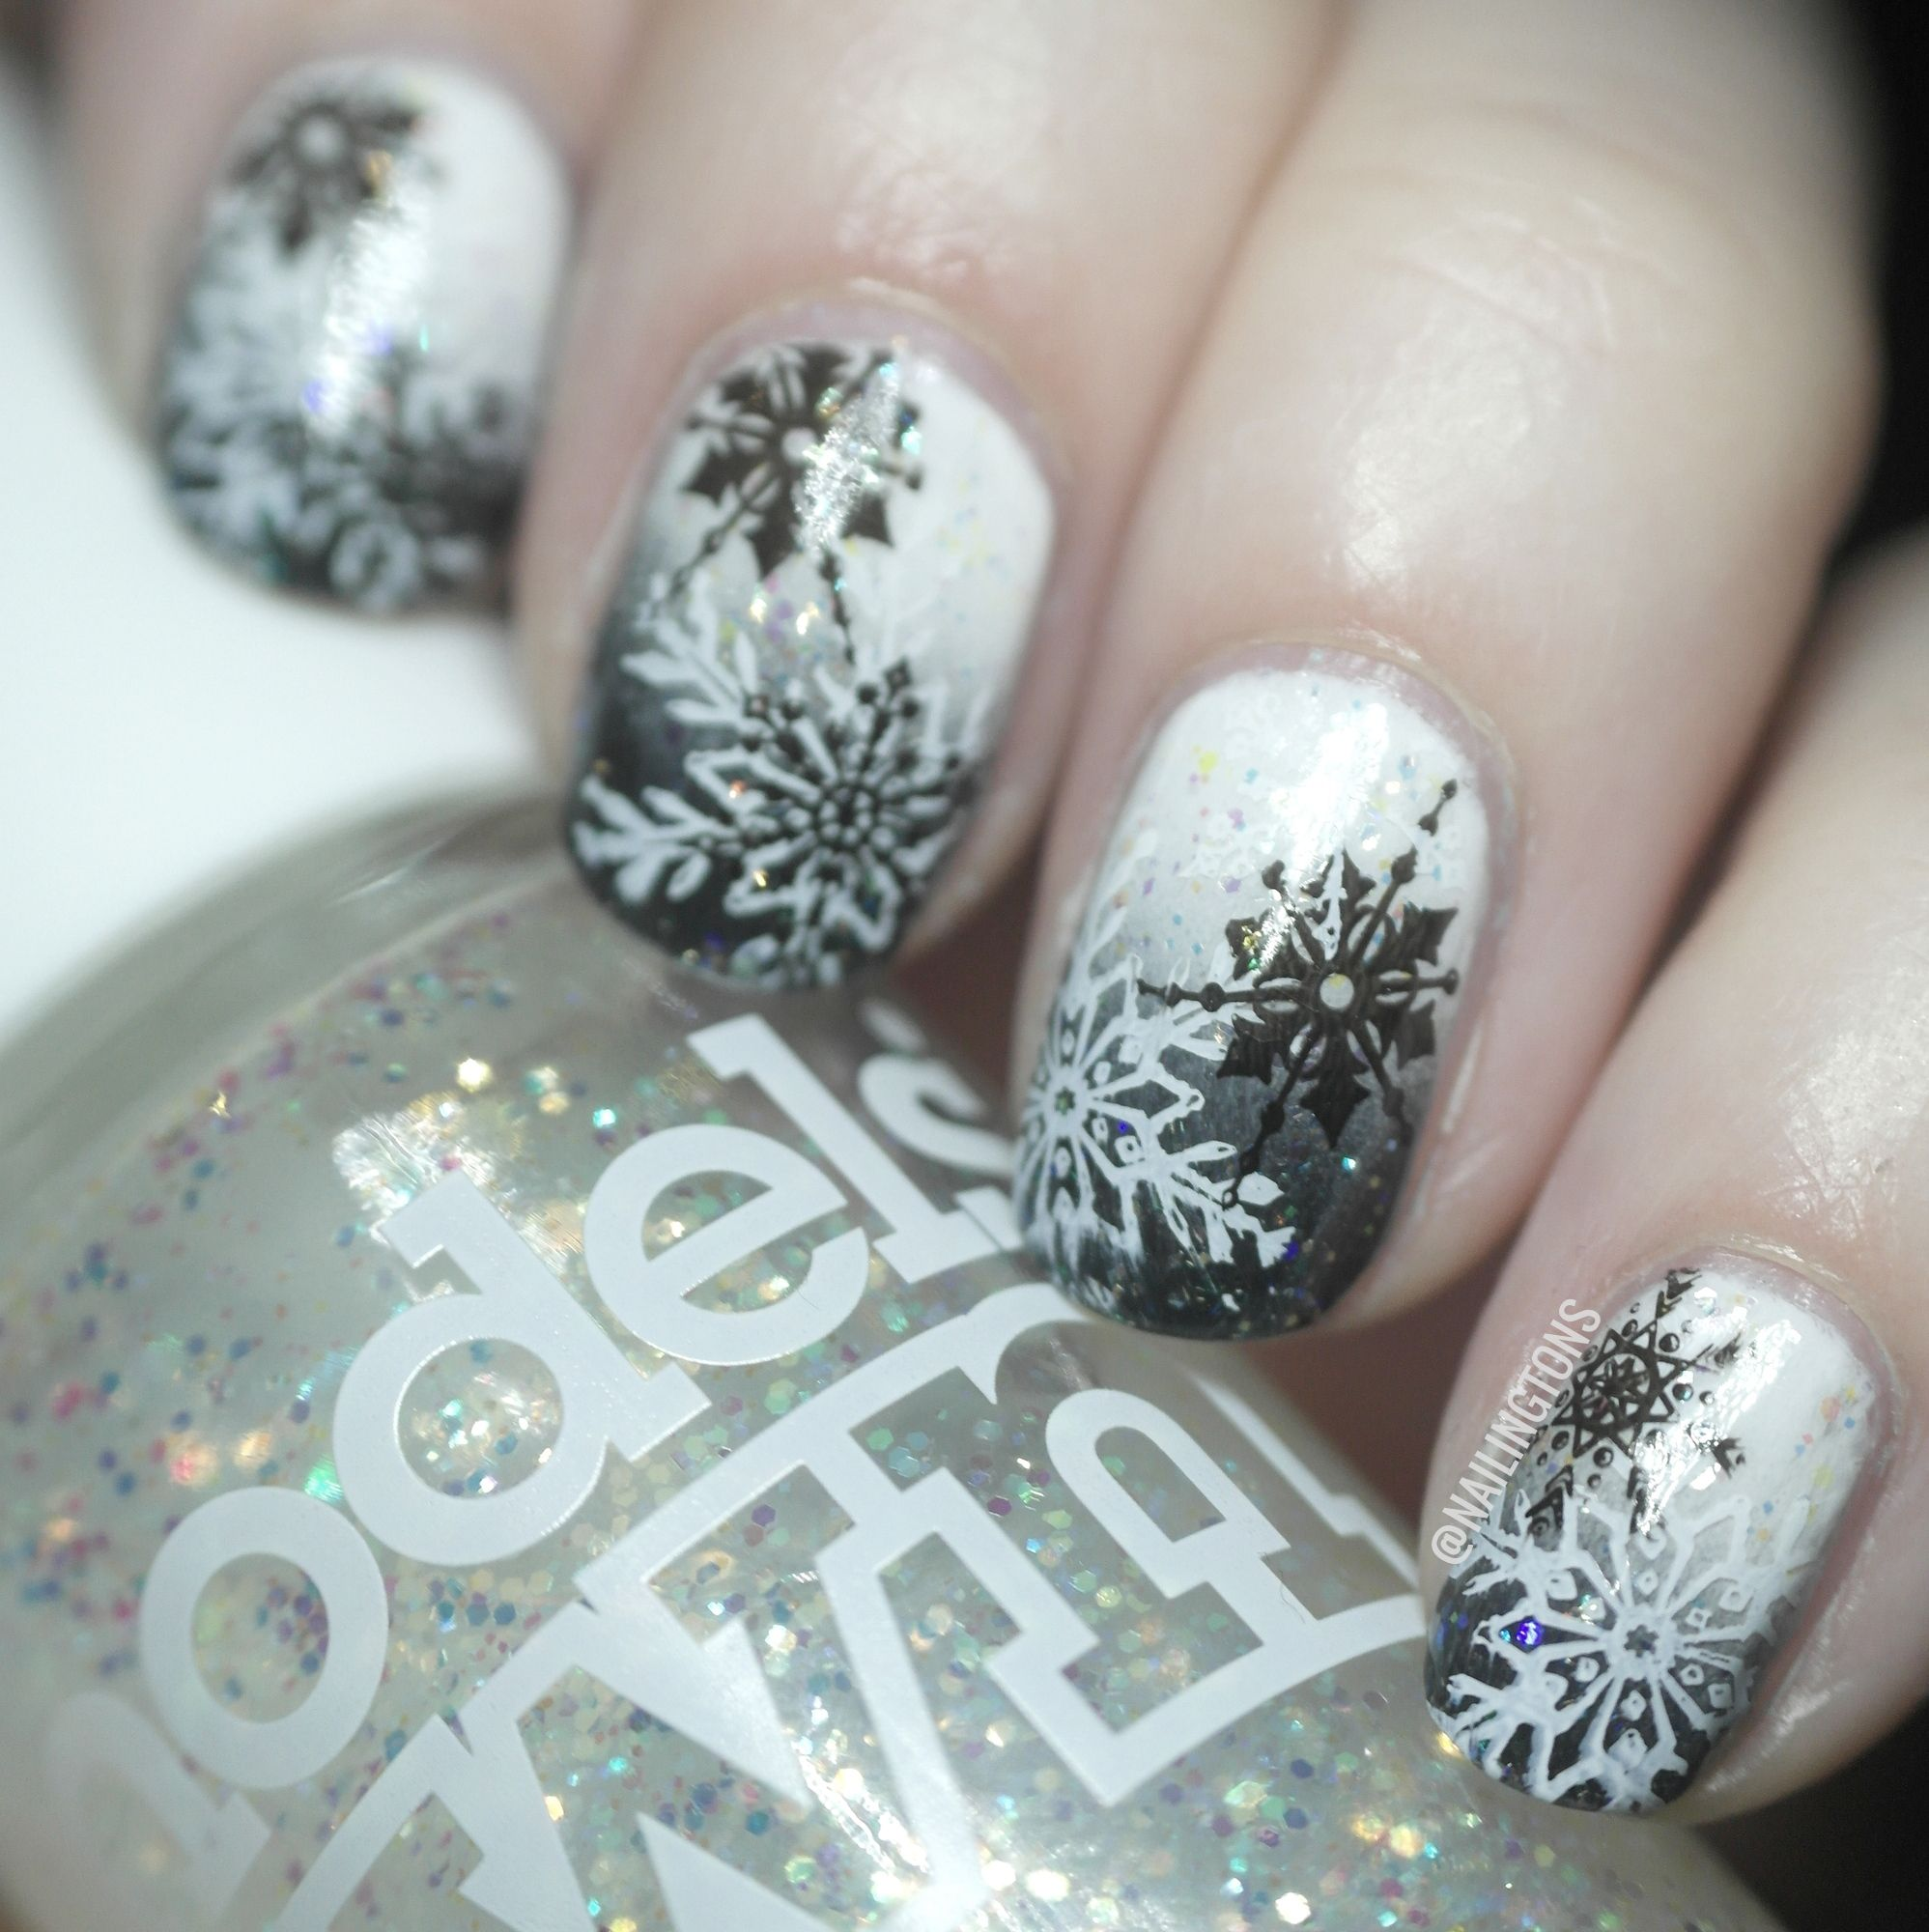 gradient black and white nails with snowflake art - Google Search ...